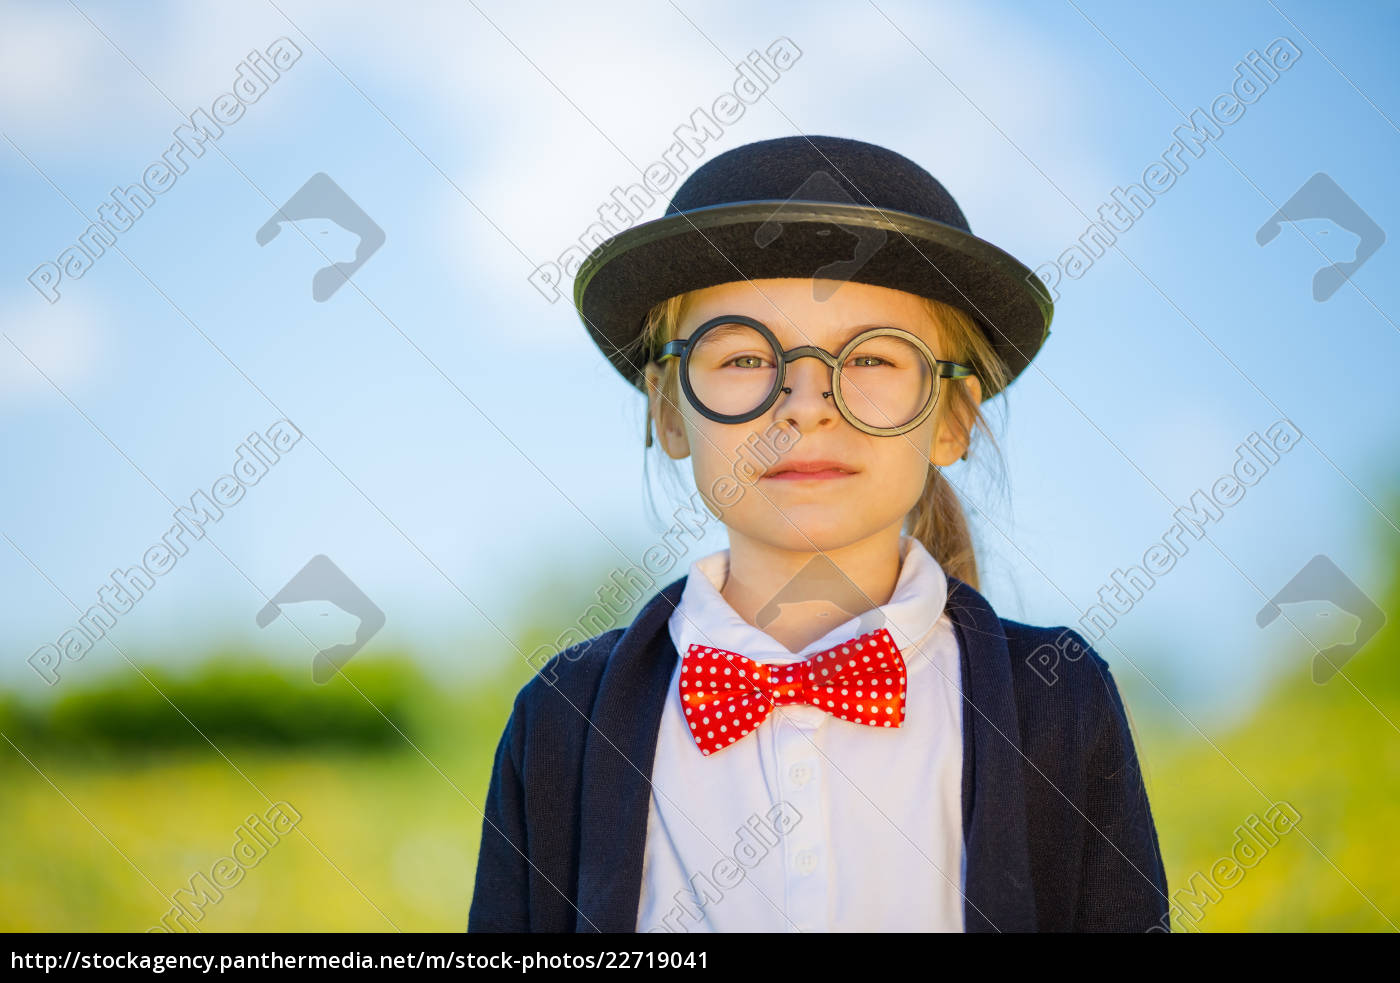 funny, little, girl, in, bow, tie - 22719041